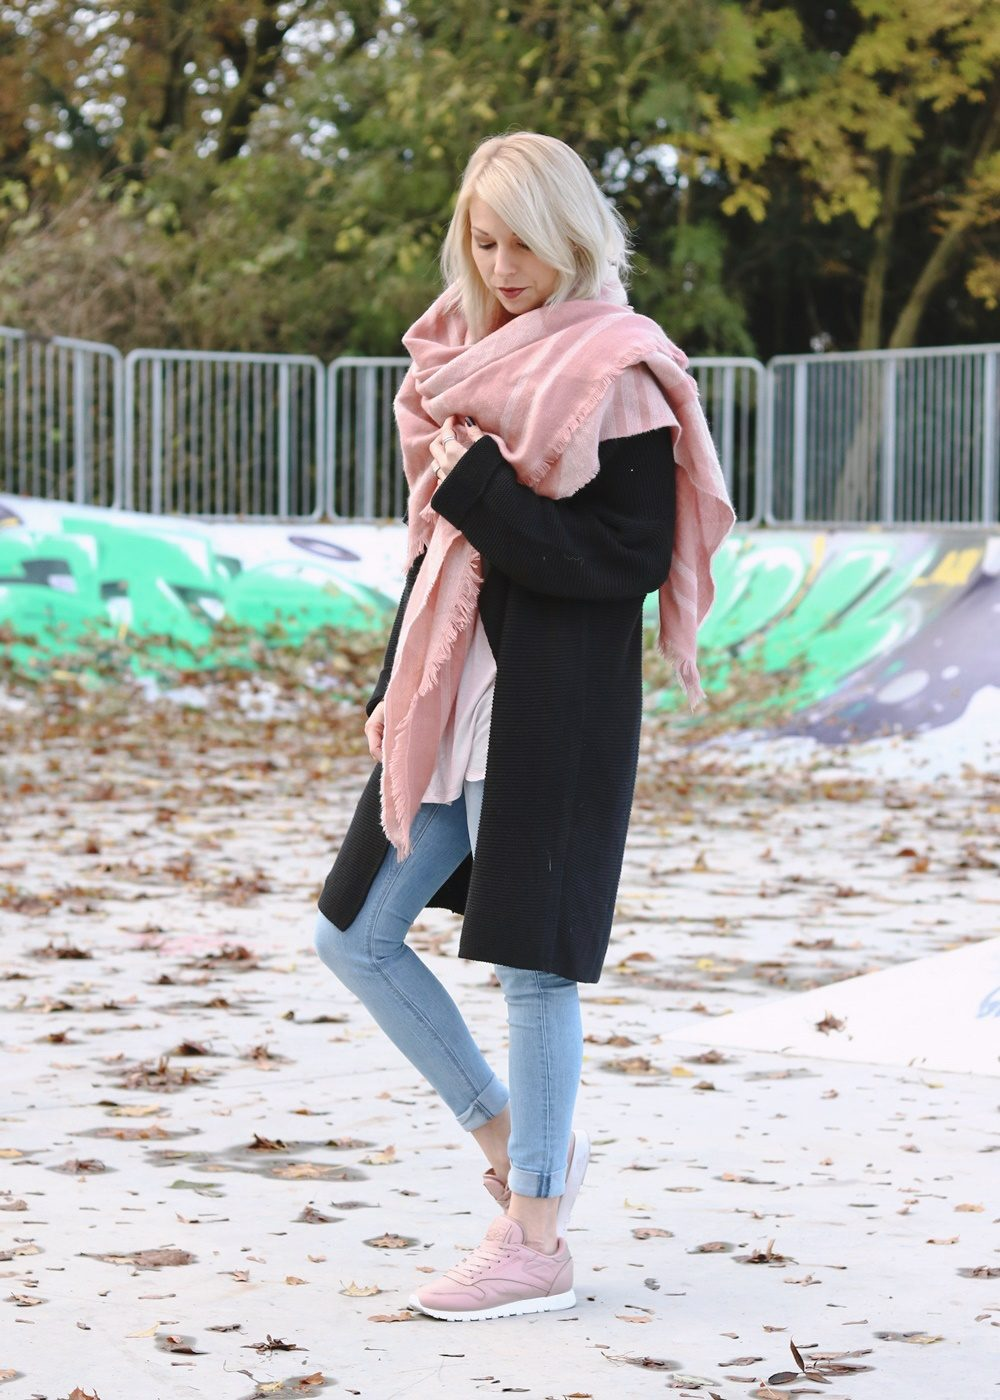 modeblogger-karlsruhe-outfit-herbst-skinnyjeans-rosa-schal-strickcardigan-reebok-classics-pearlized-metallic-5